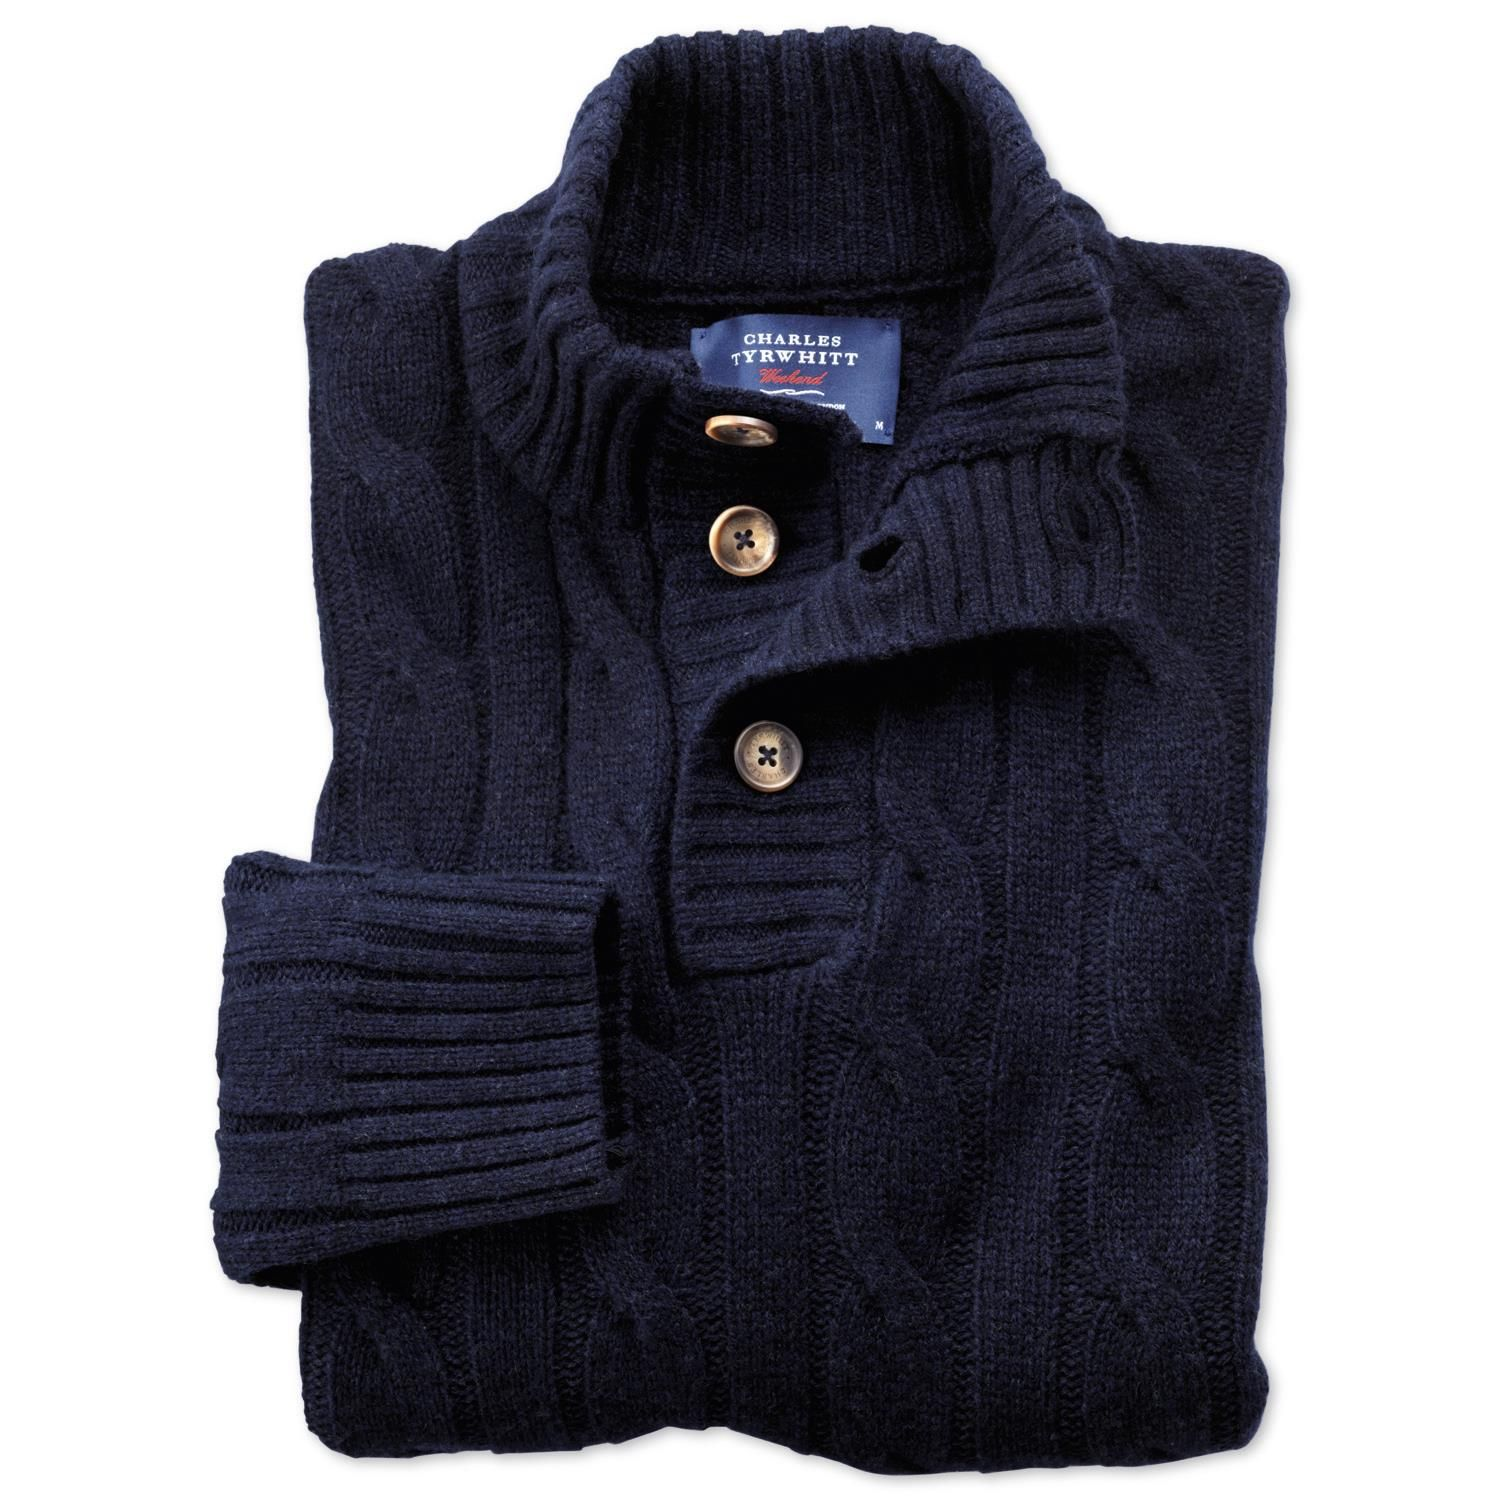 Navy lambswool cable button neck jumper | Men's knitwear